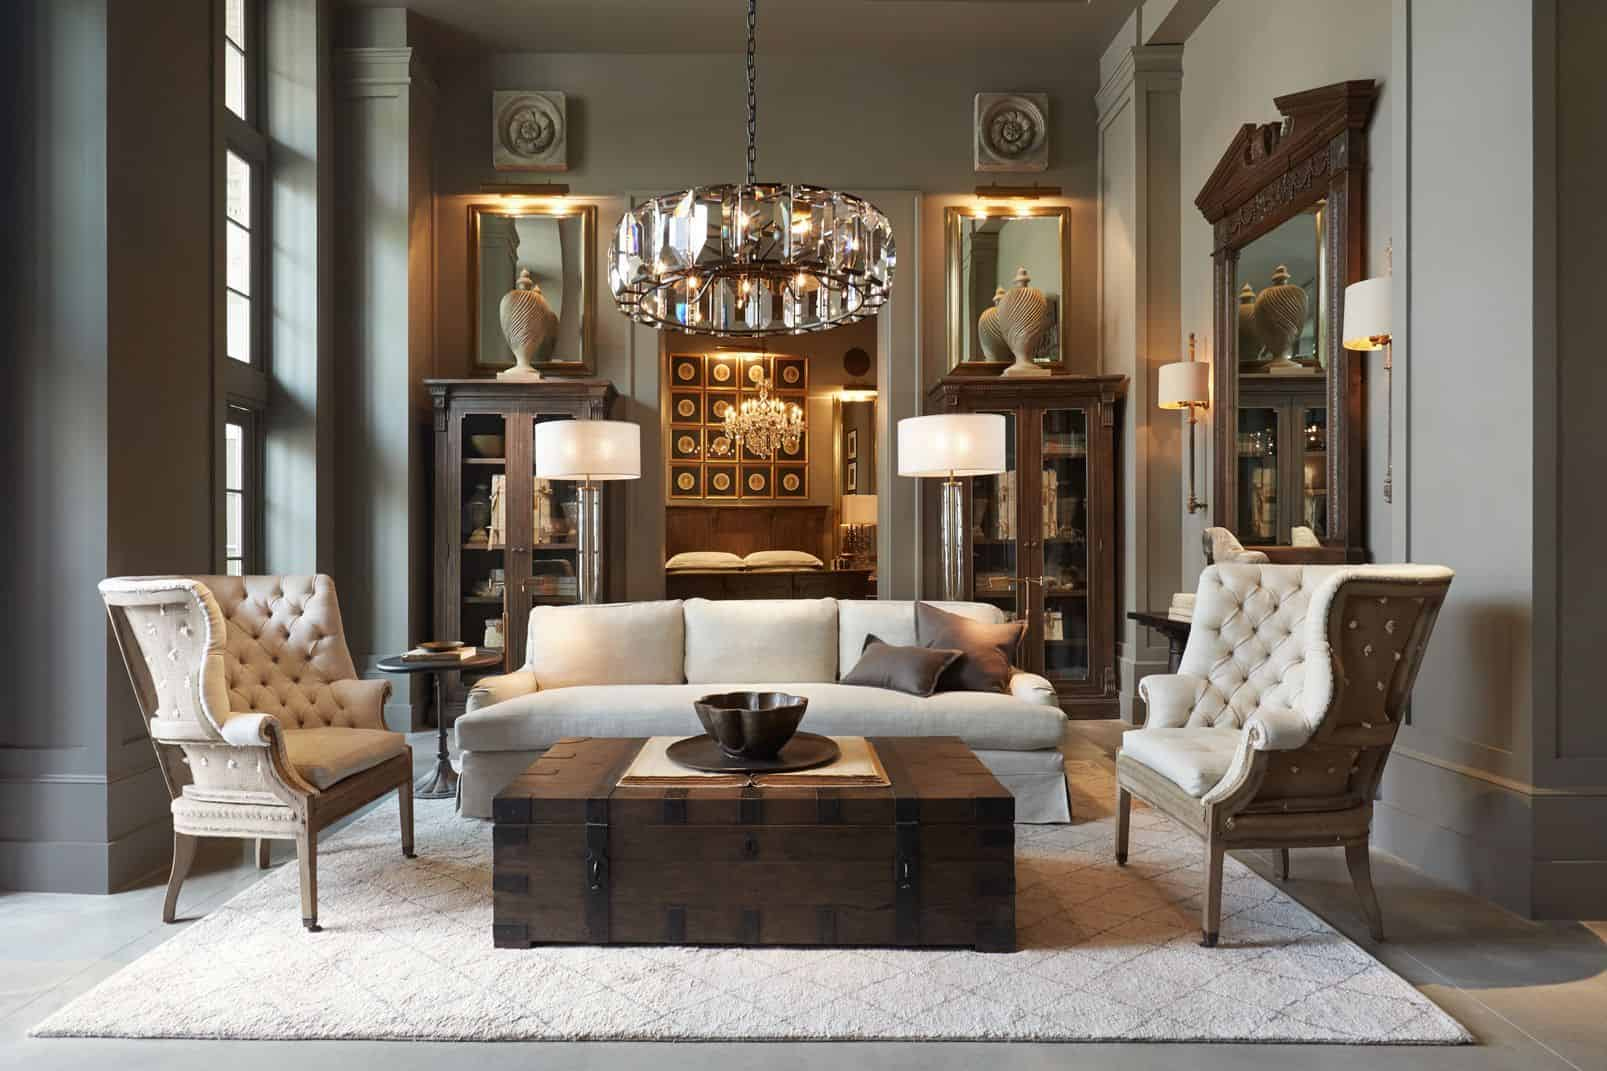 Top 5 Reasons To Buy From The Online Furniture Store In Bankstown